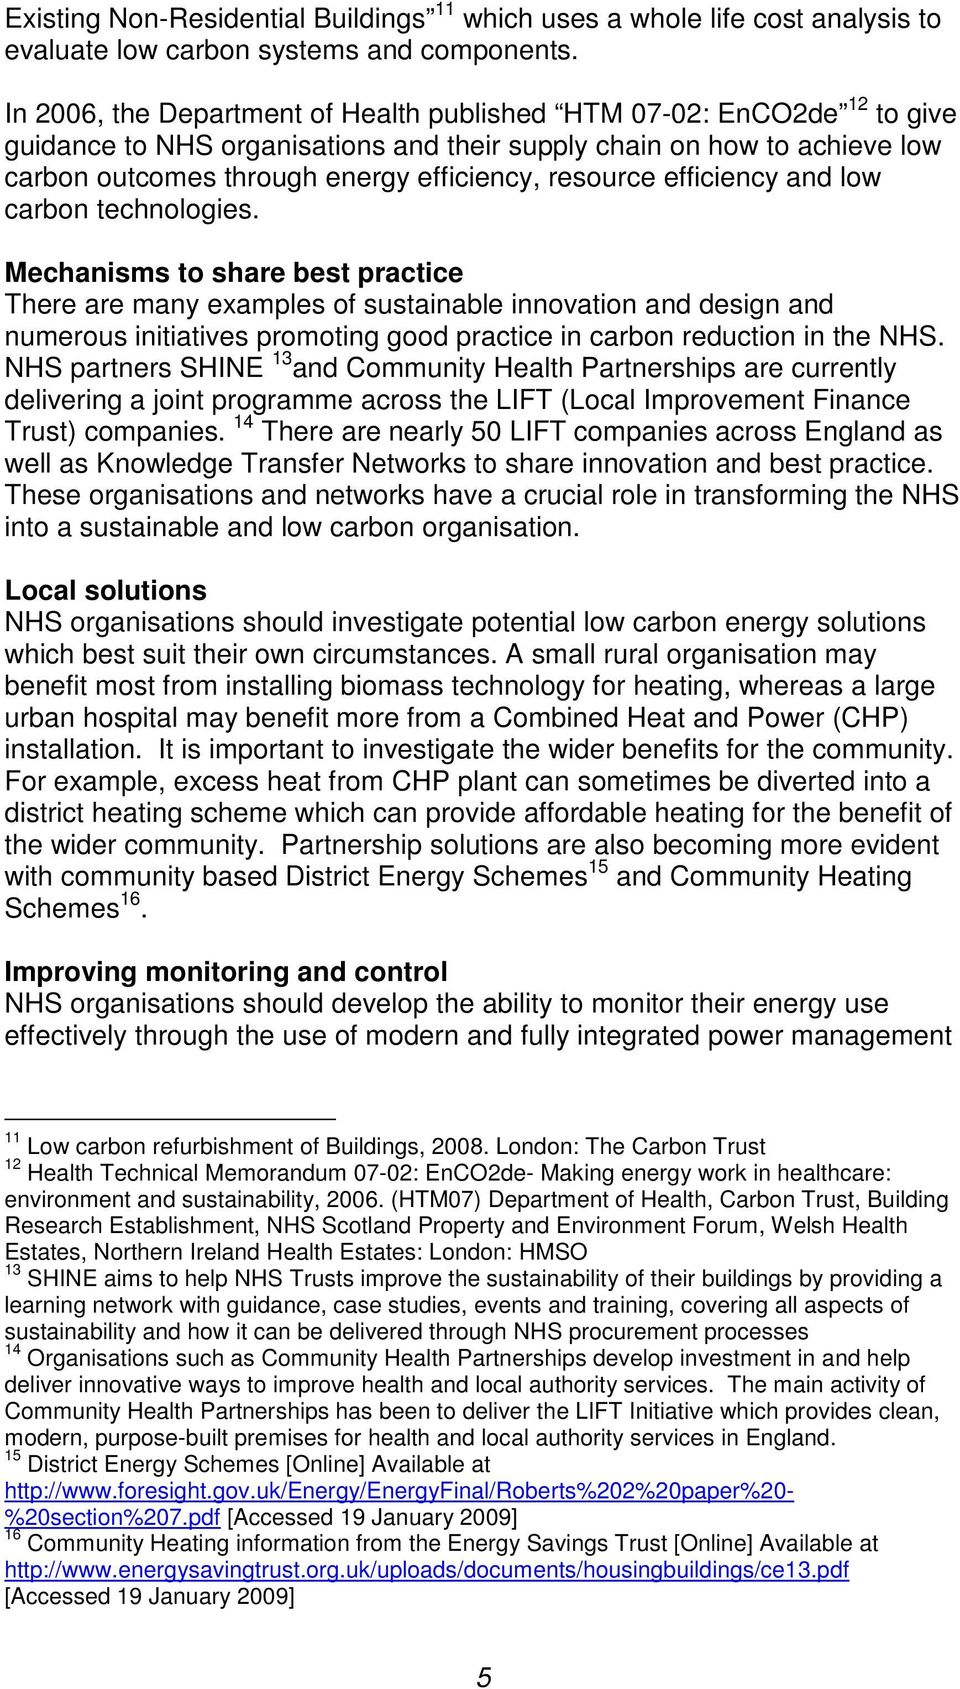 resource efficiency and low carbon technologies.